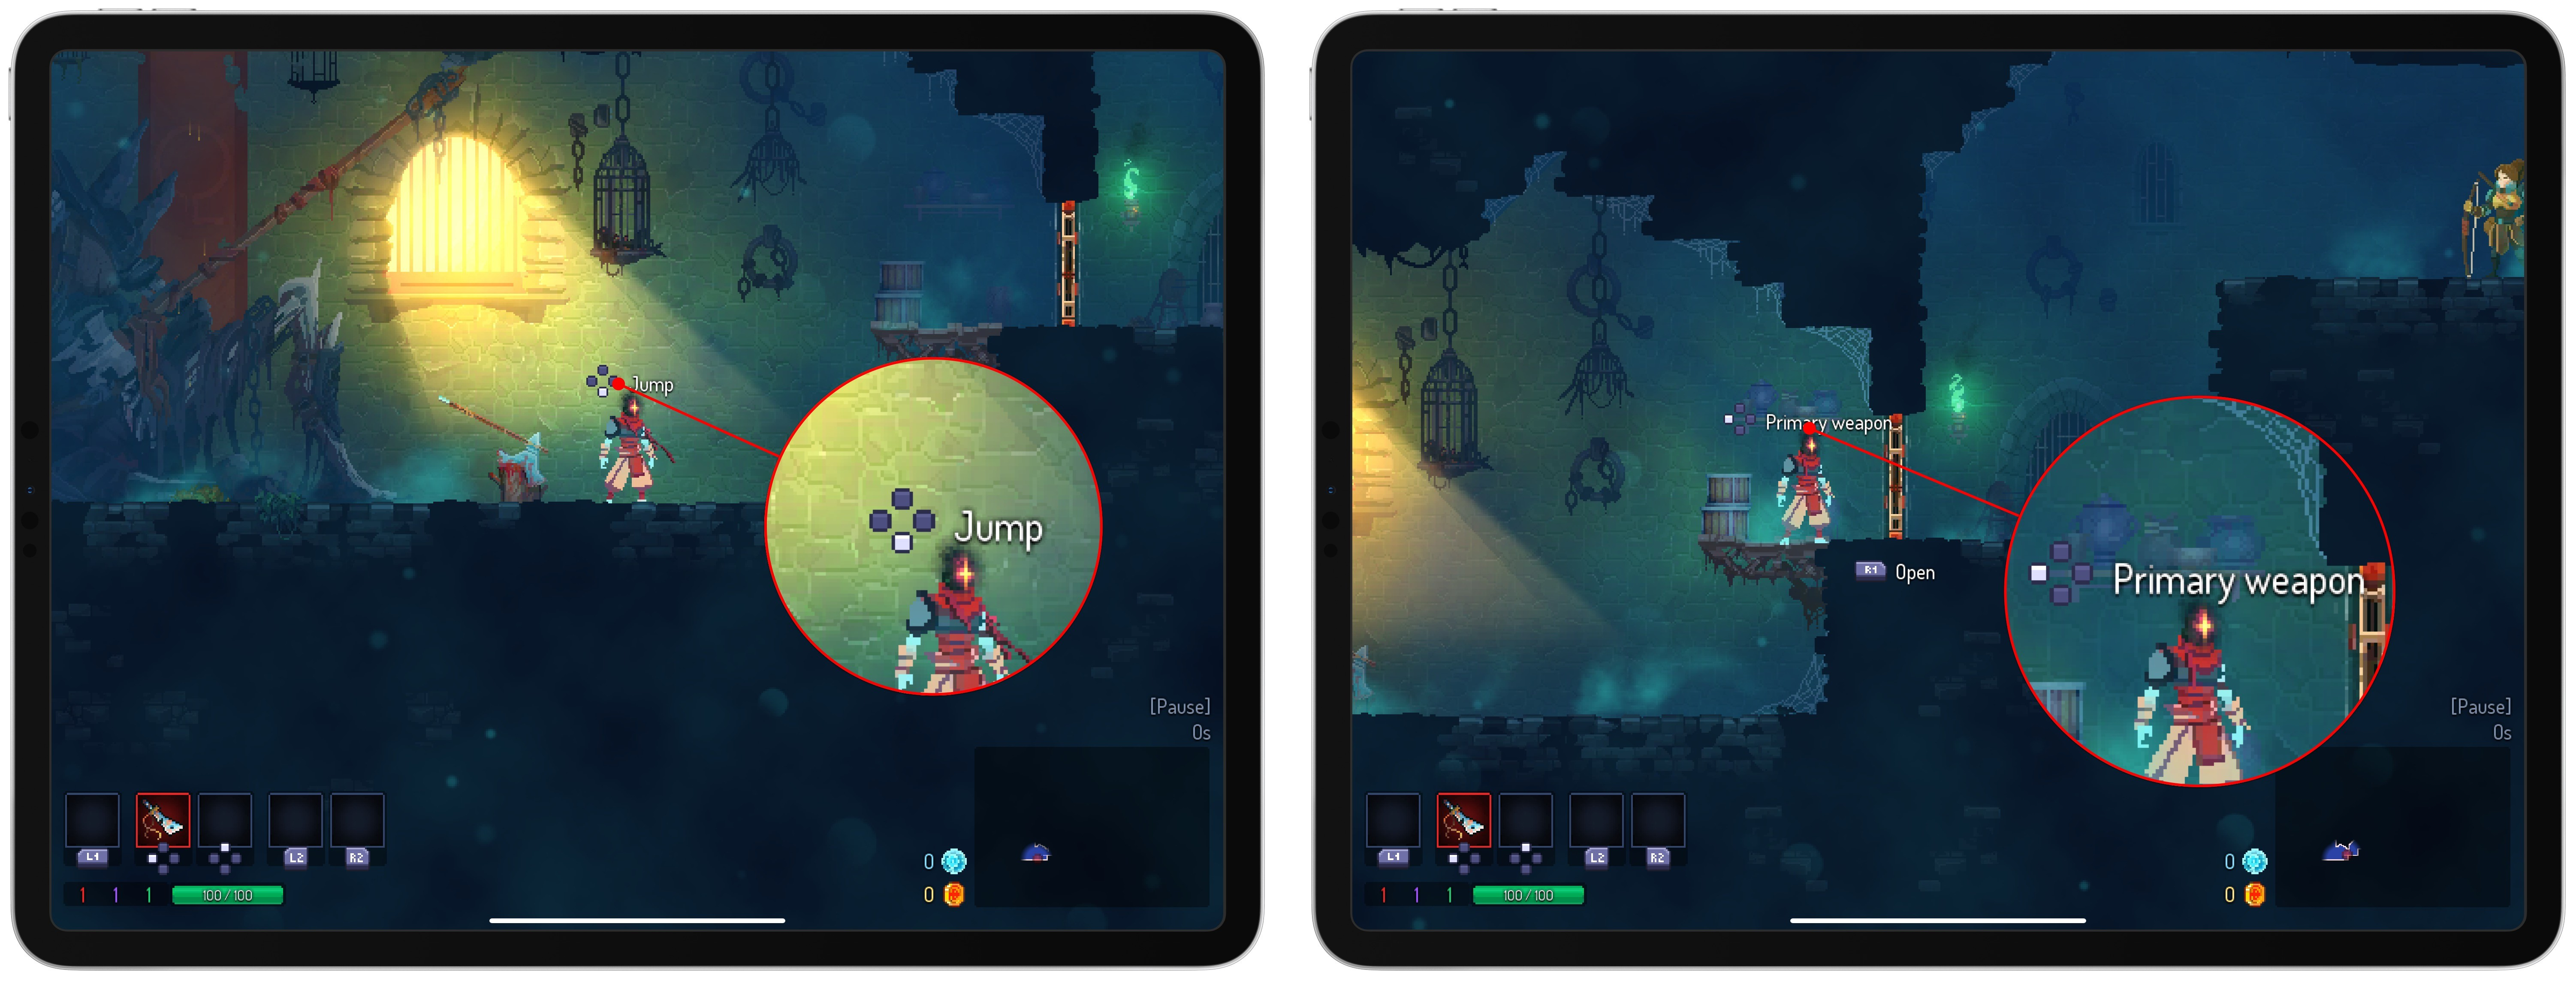 Dead Cells is a good example of a game that uses generic positional mapping of controls for in-game hints.